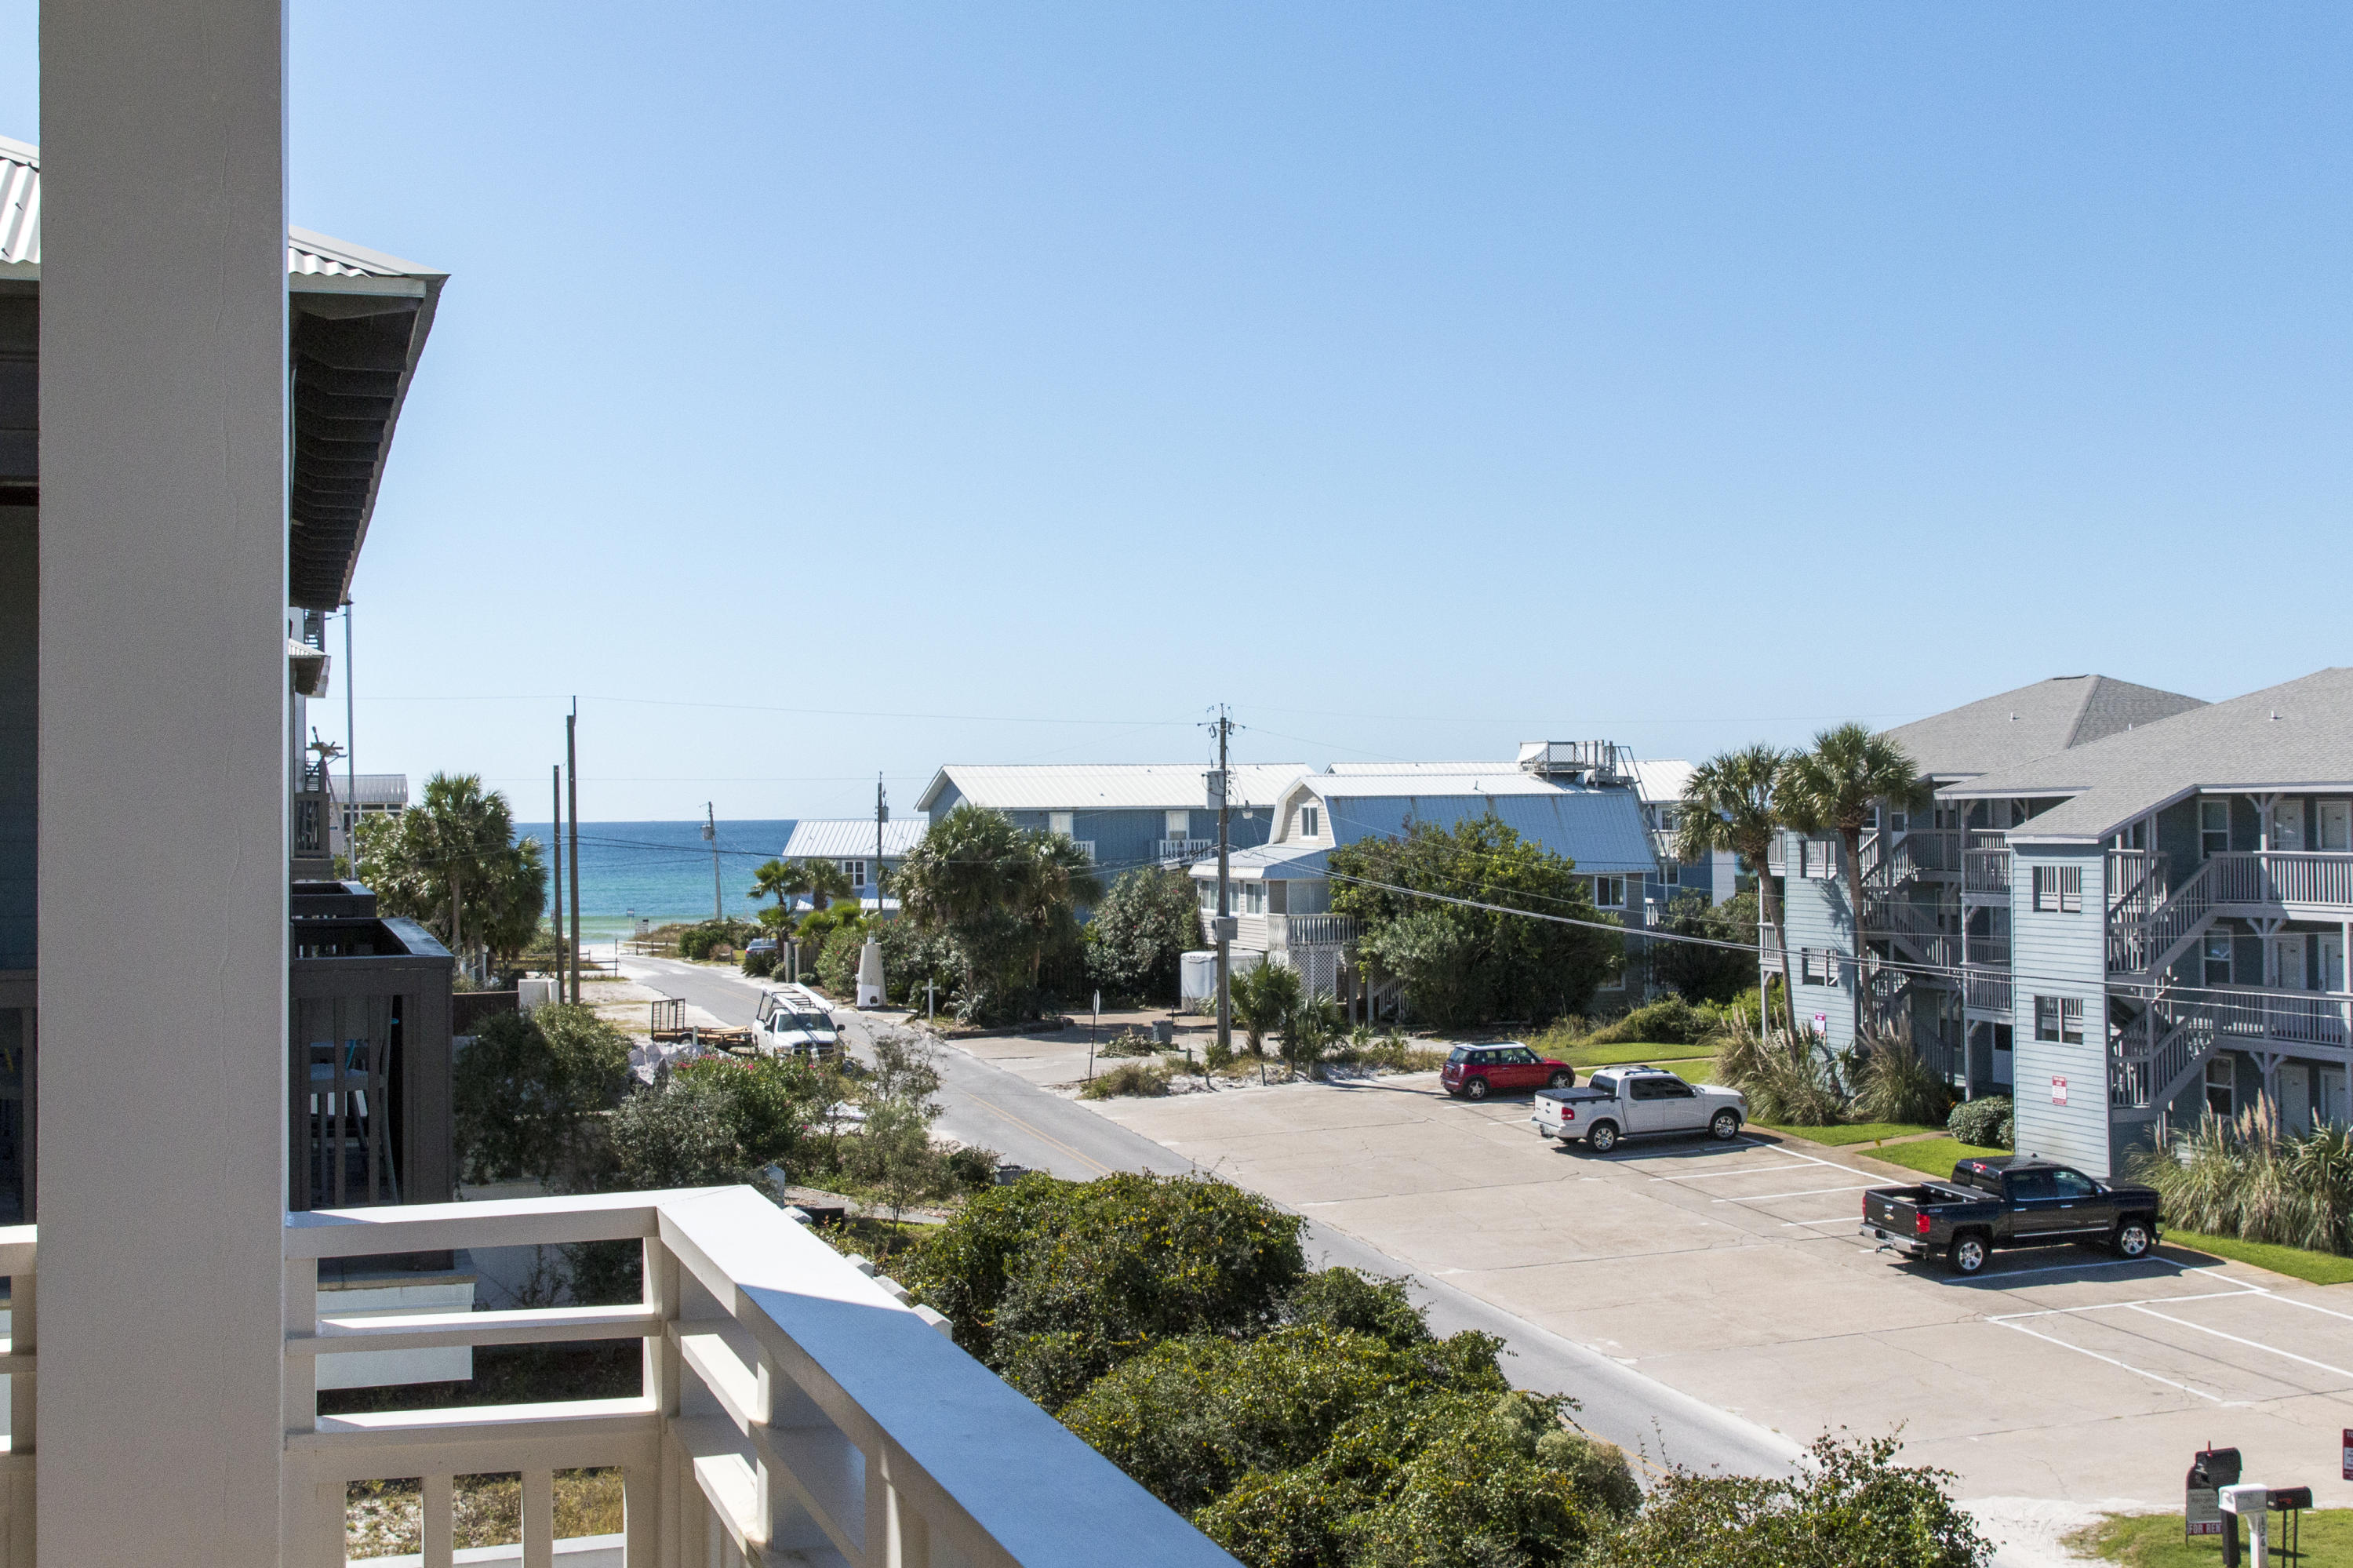 32 Park Place,Inlet Beach,Florida 32461,5 Bedrooms Bedrooms,5 BathroomsBathrooms,Attached single unit,Park Place,20131126143817002353000000